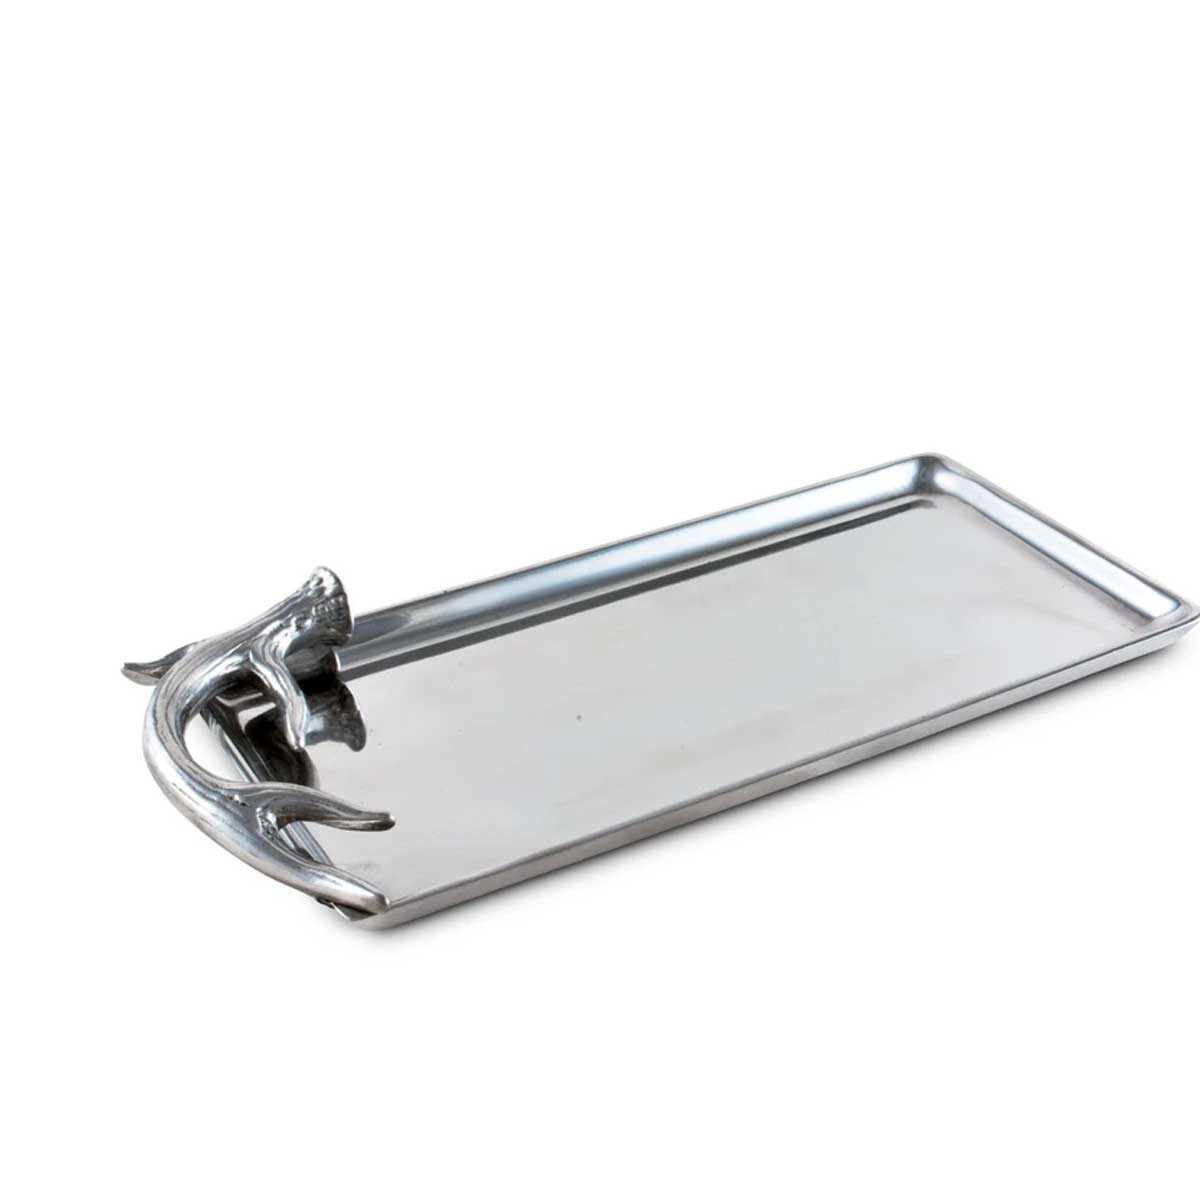 Vagabond House 6x12 Inch Antler Serving Tray